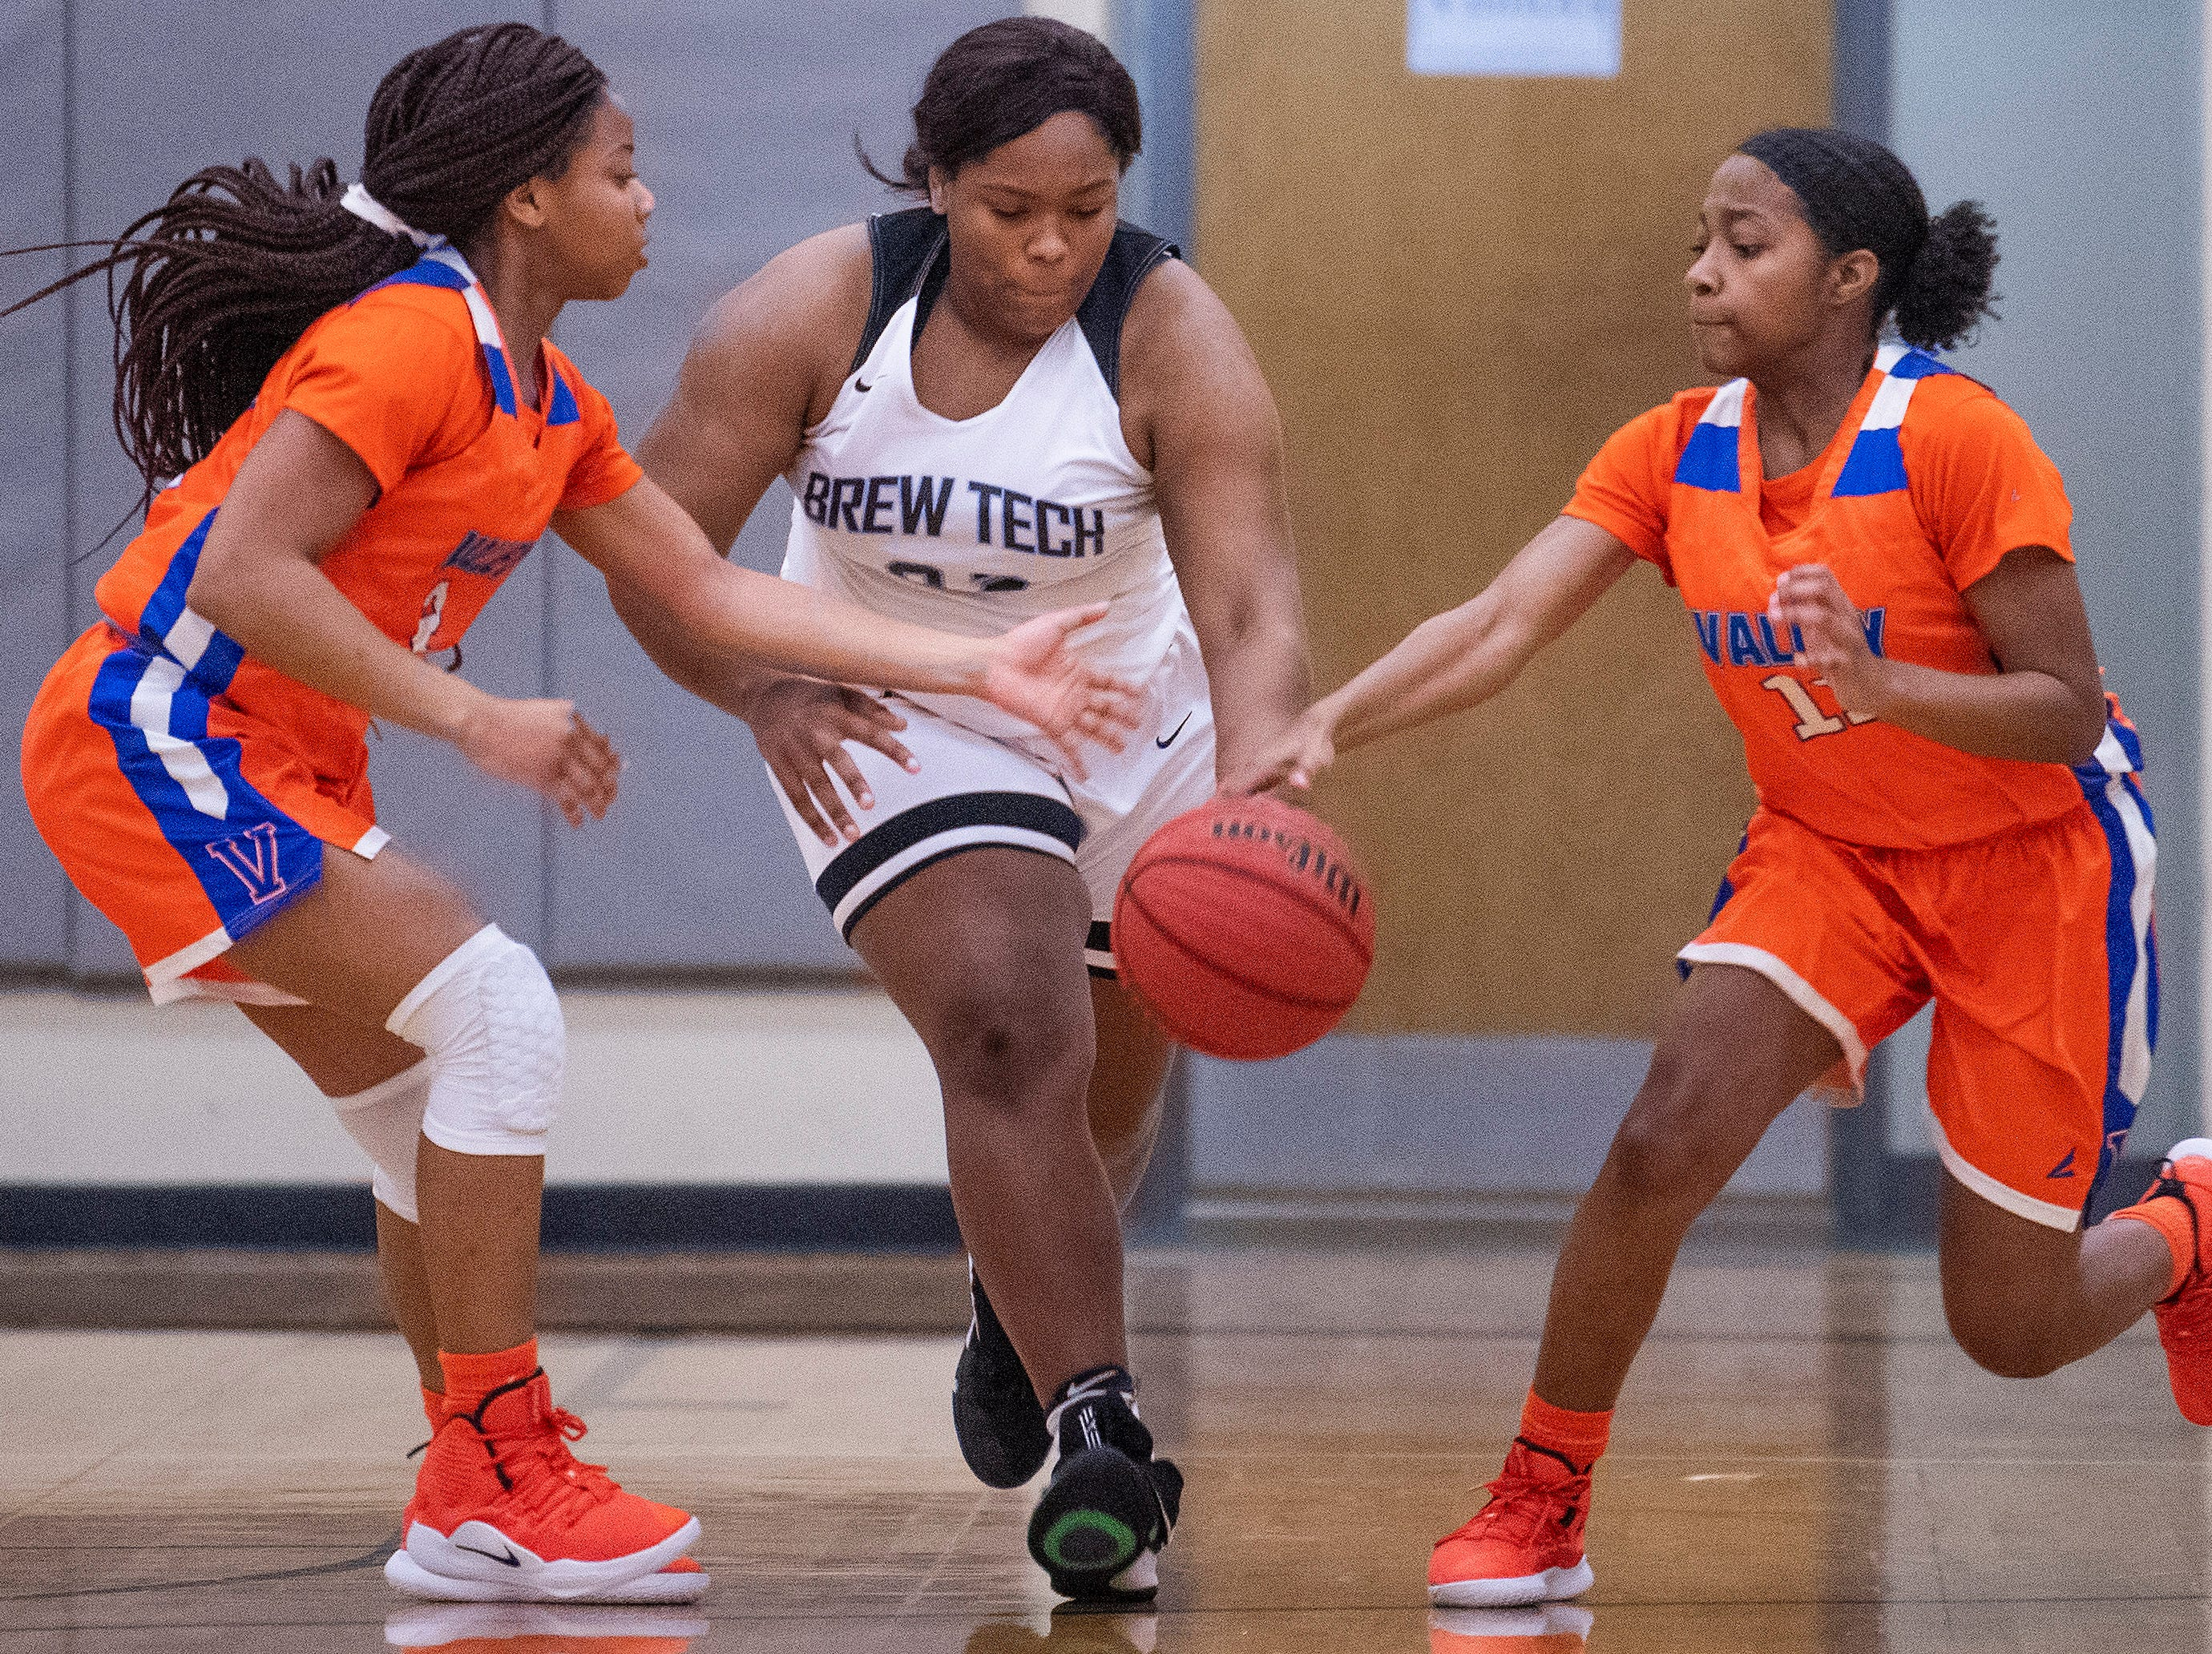 Brewbaker Tech's Briana Bradshaw (32) against Valley at the BrewTech campus in Montgomery, Ala., on Thursday February 7, 2019.